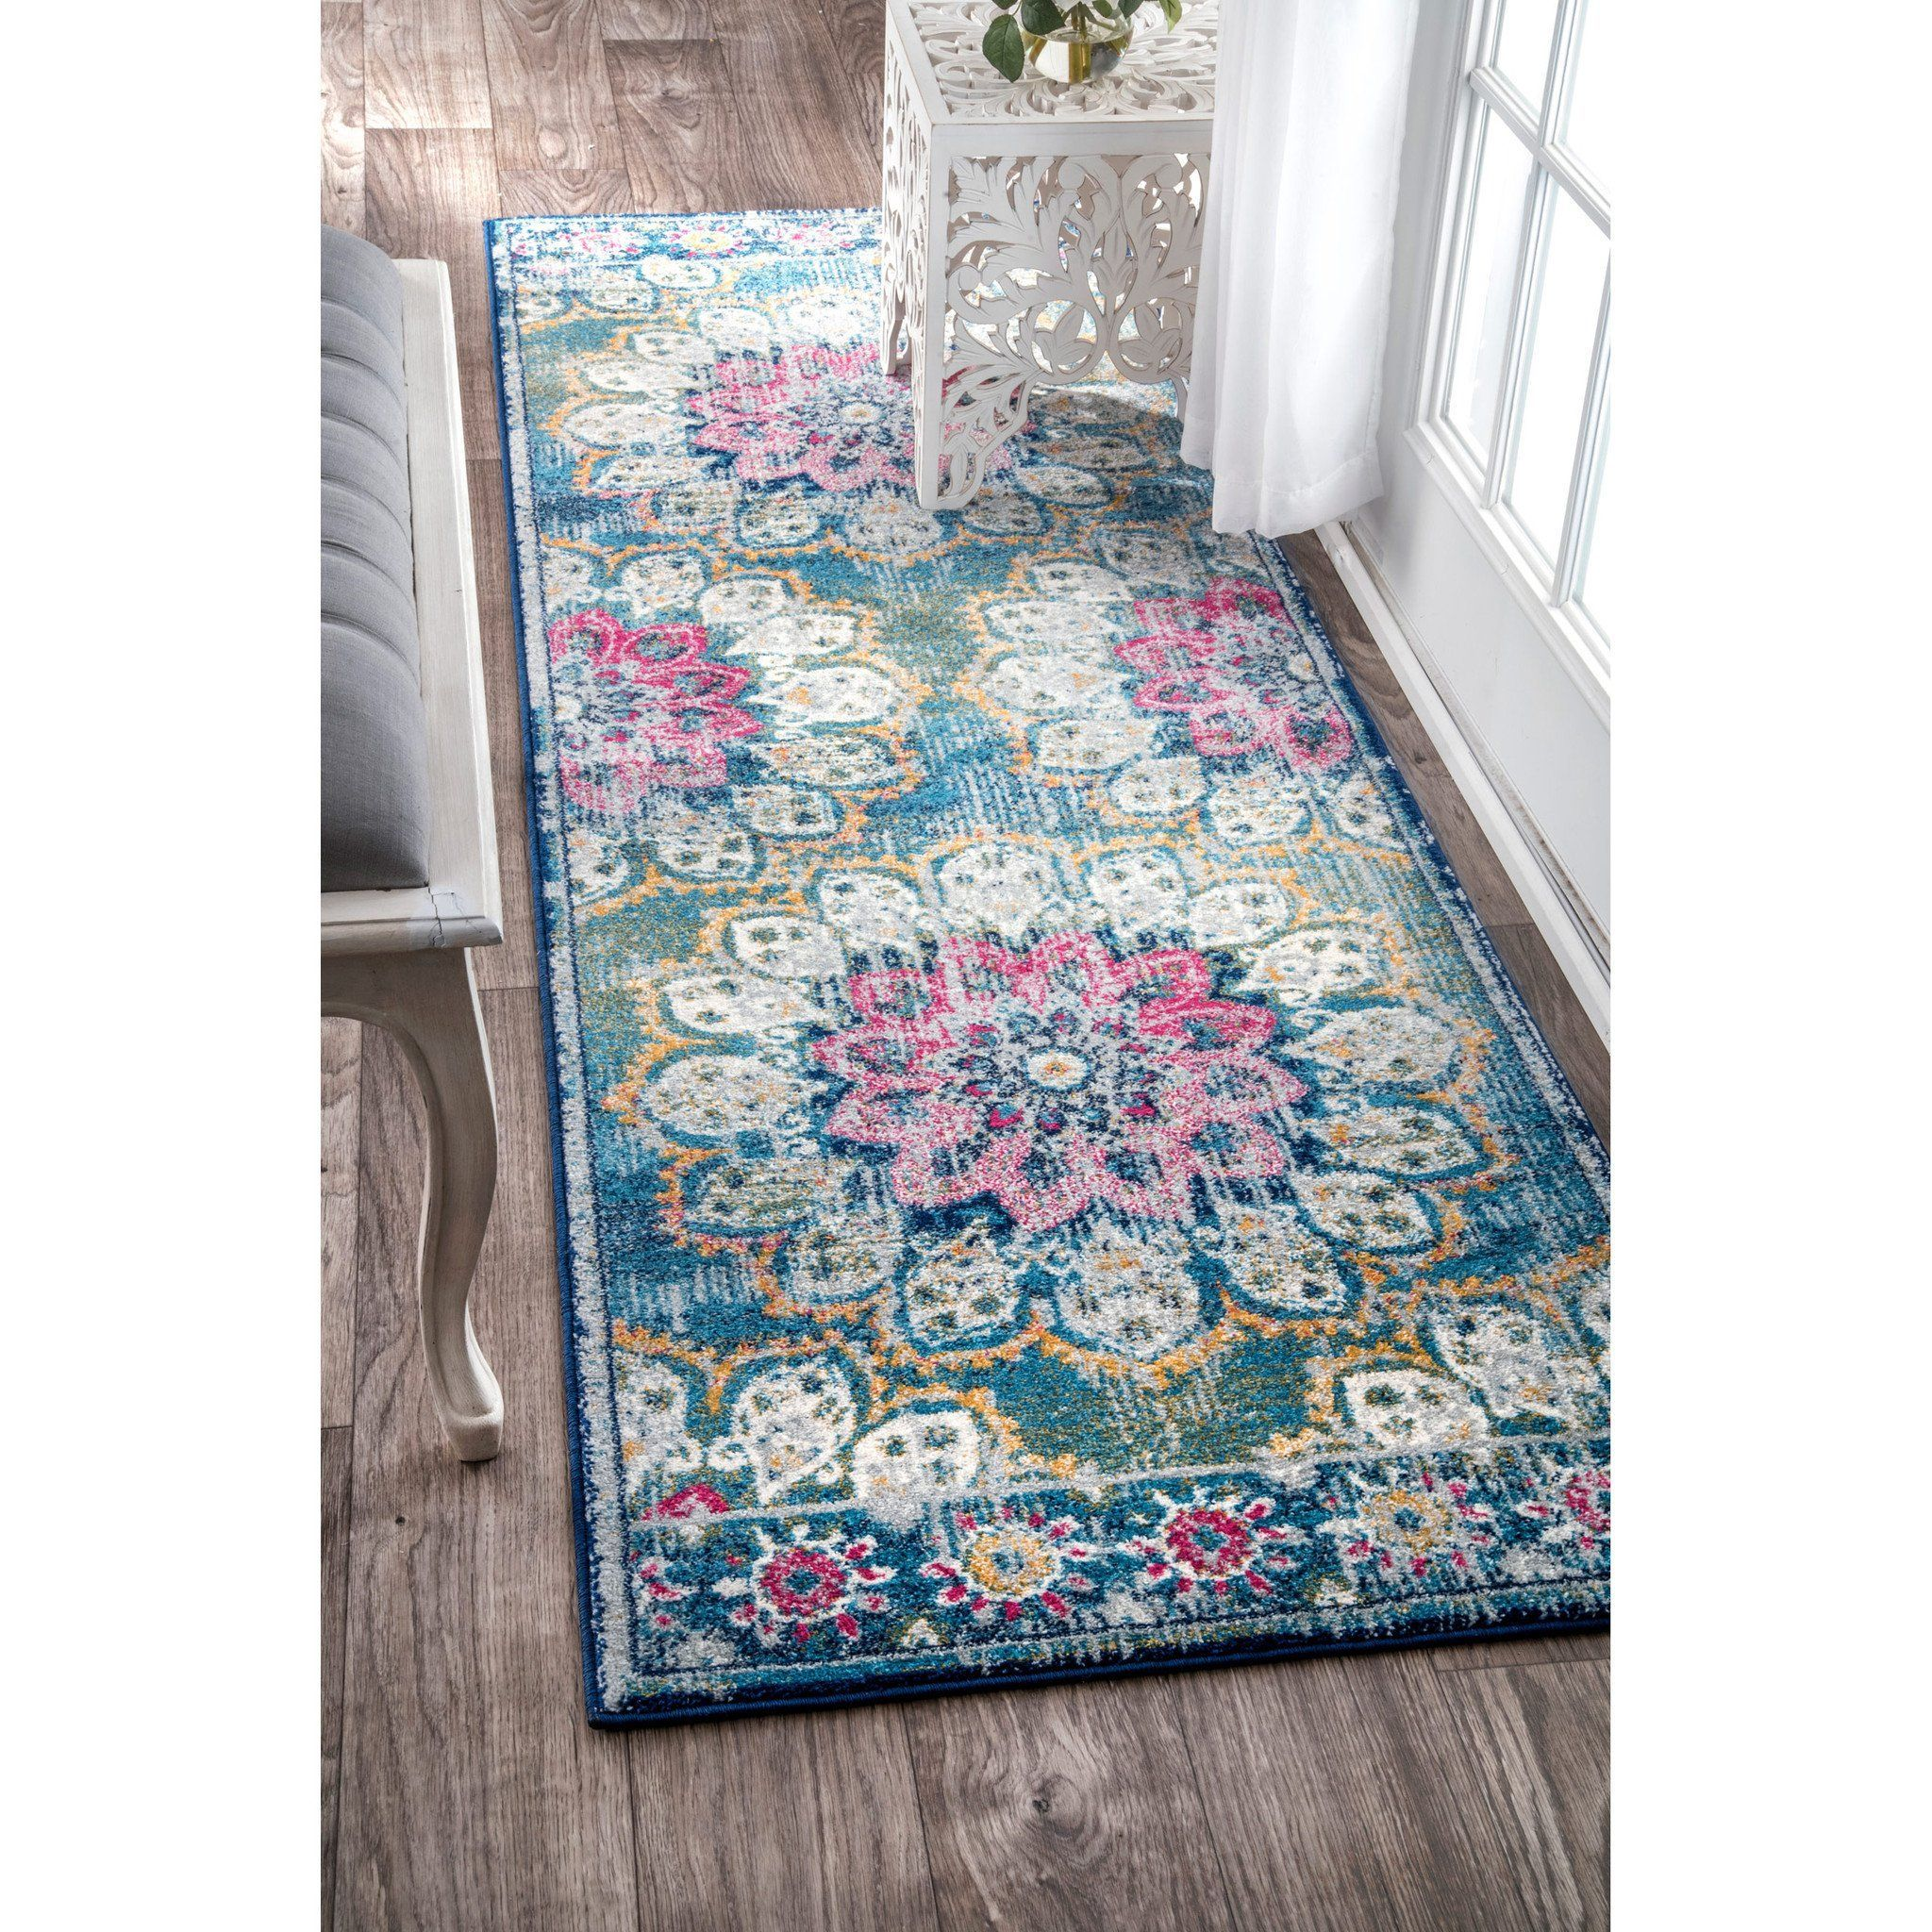 Vintage Floral Kiyoko Area Rugs For Sale Home Decor Outlet Area Rugs